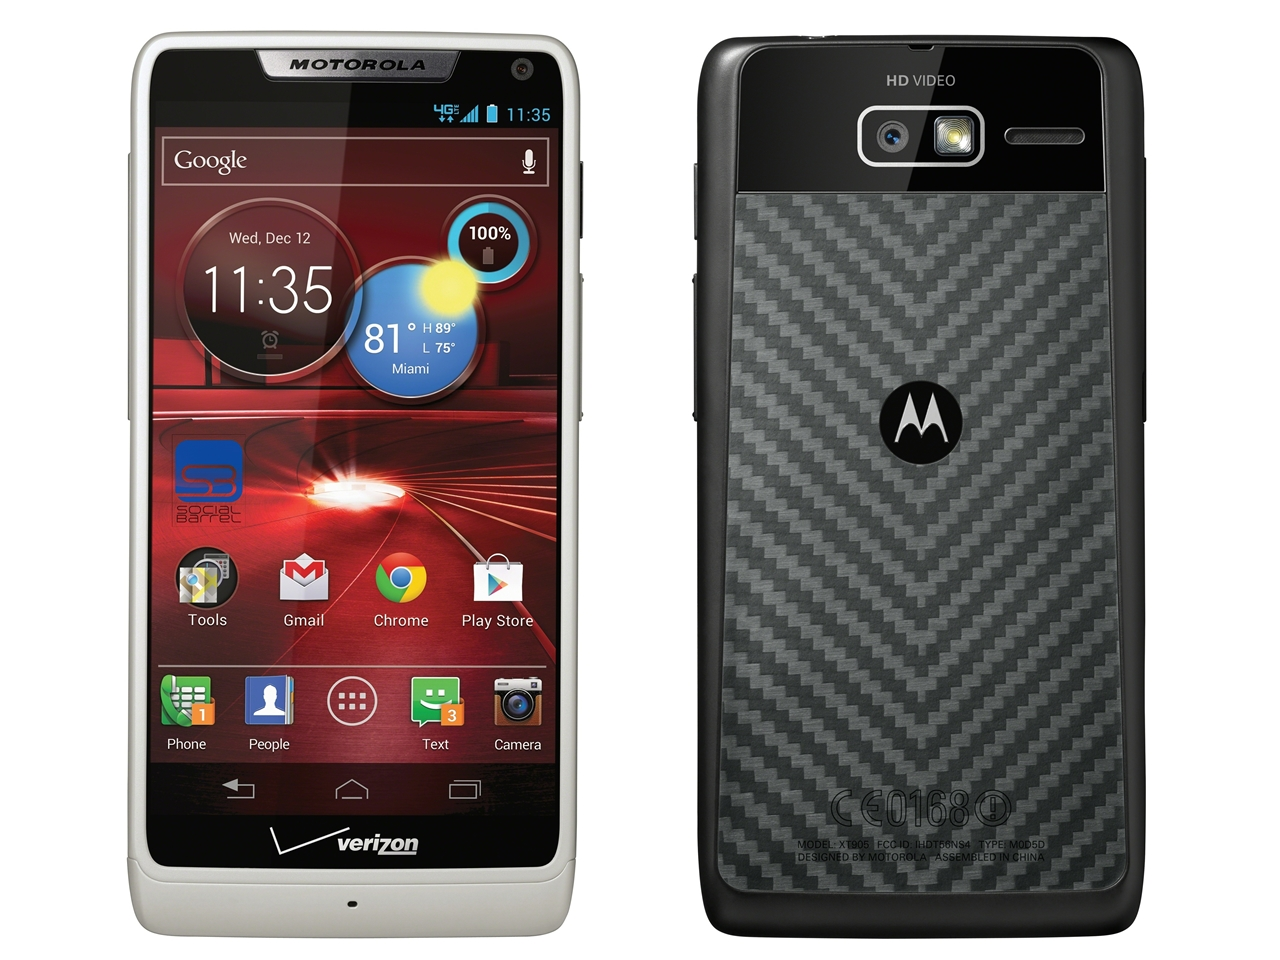 DROID RAZR M, Motorola, Verizon, specification, price, specs, release date